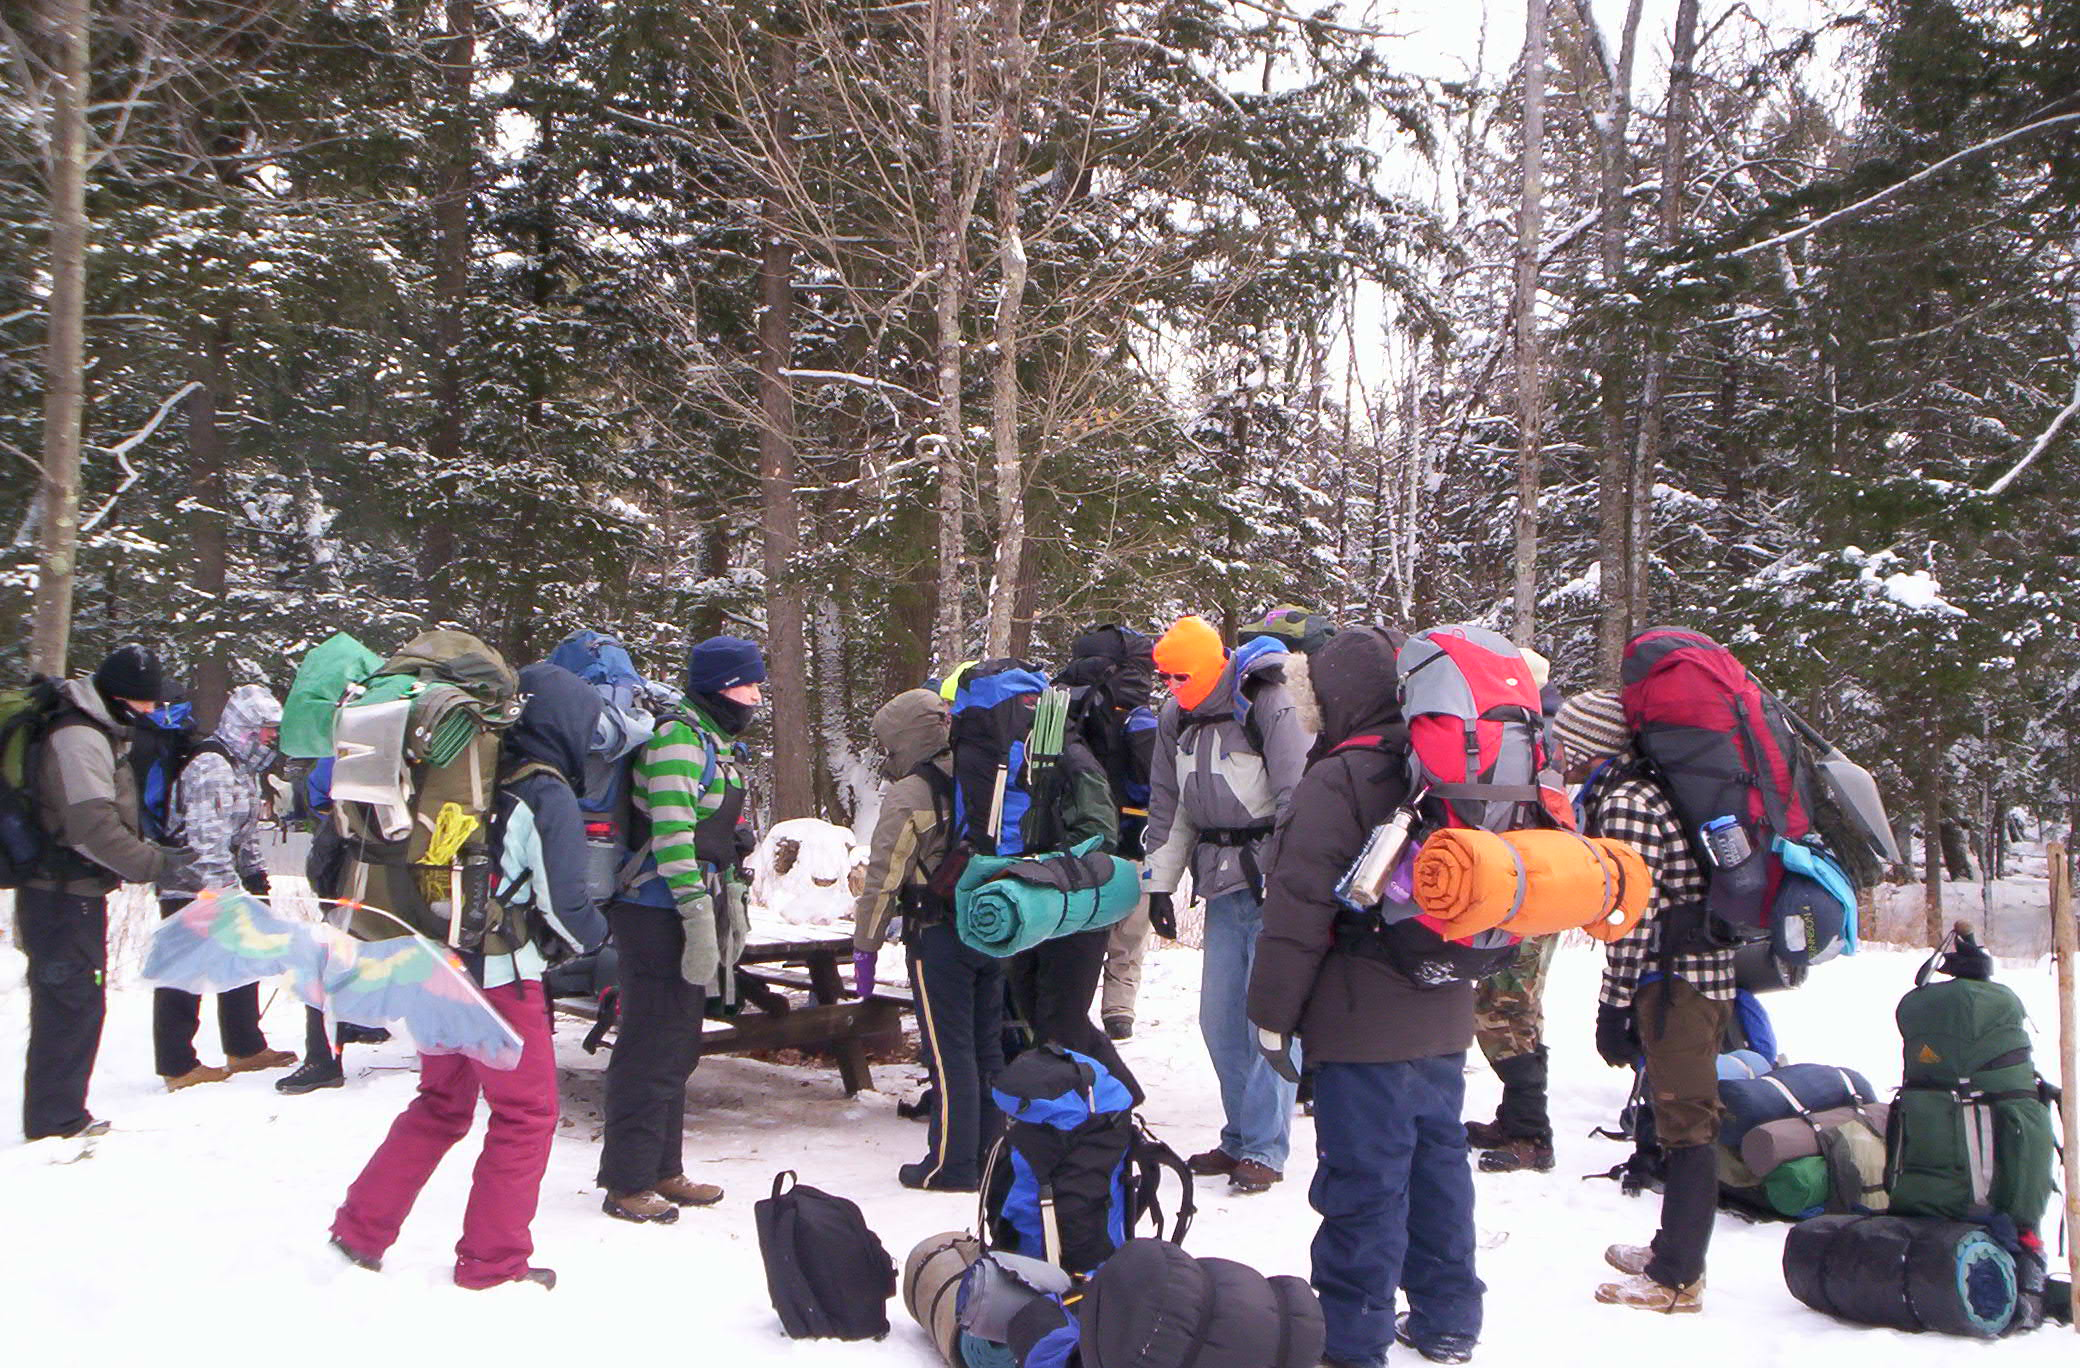 students with packs for winter backpacking